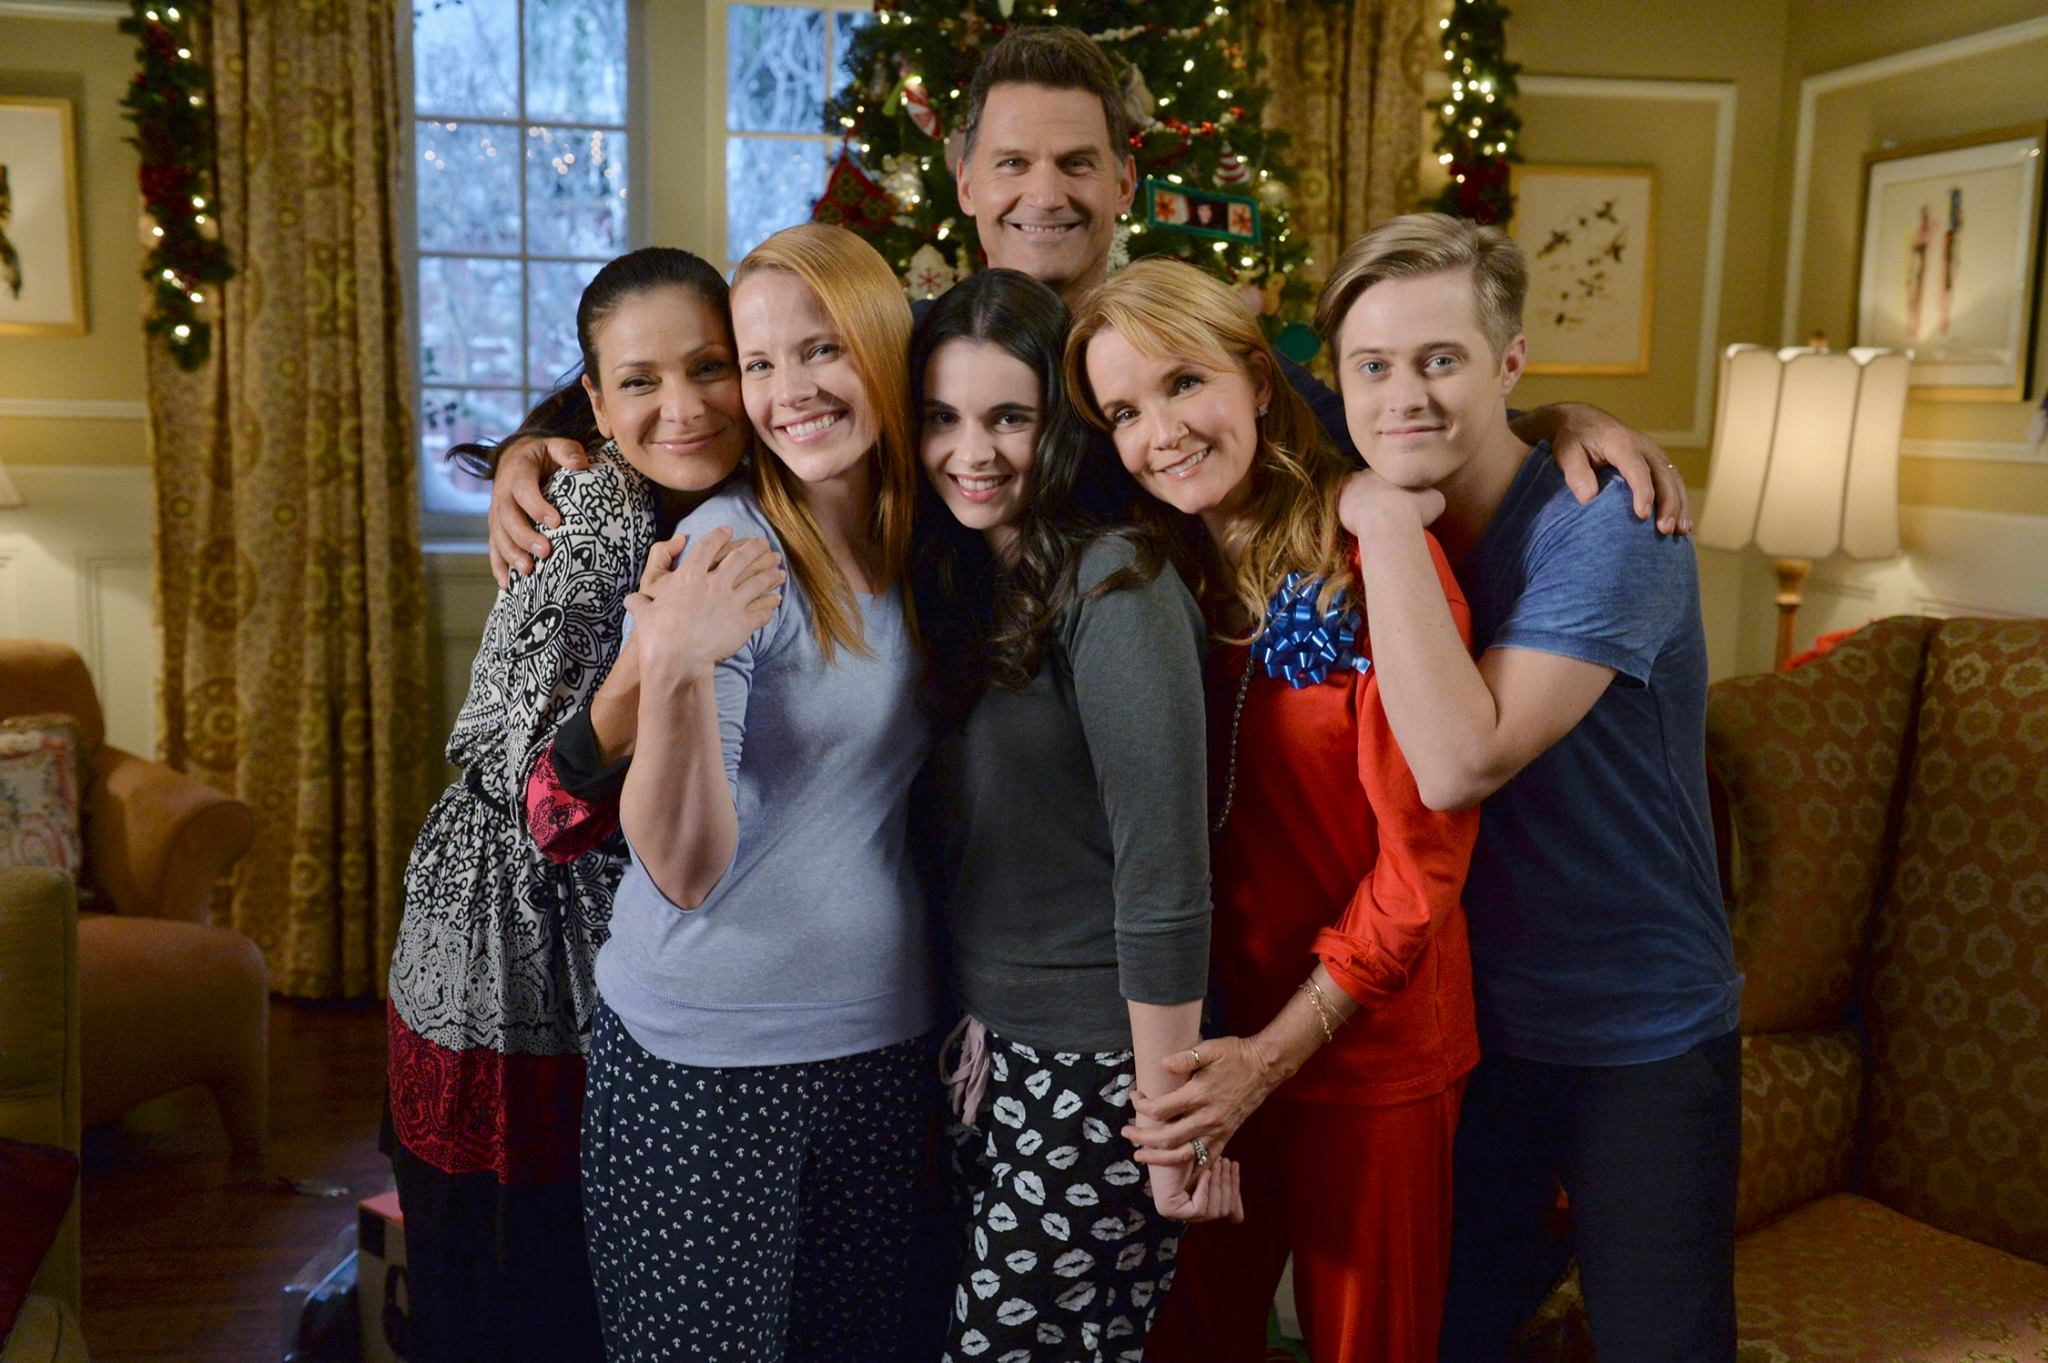 Dear ABC Family: For Some Shows, Skip the Merry Christmas | Raked